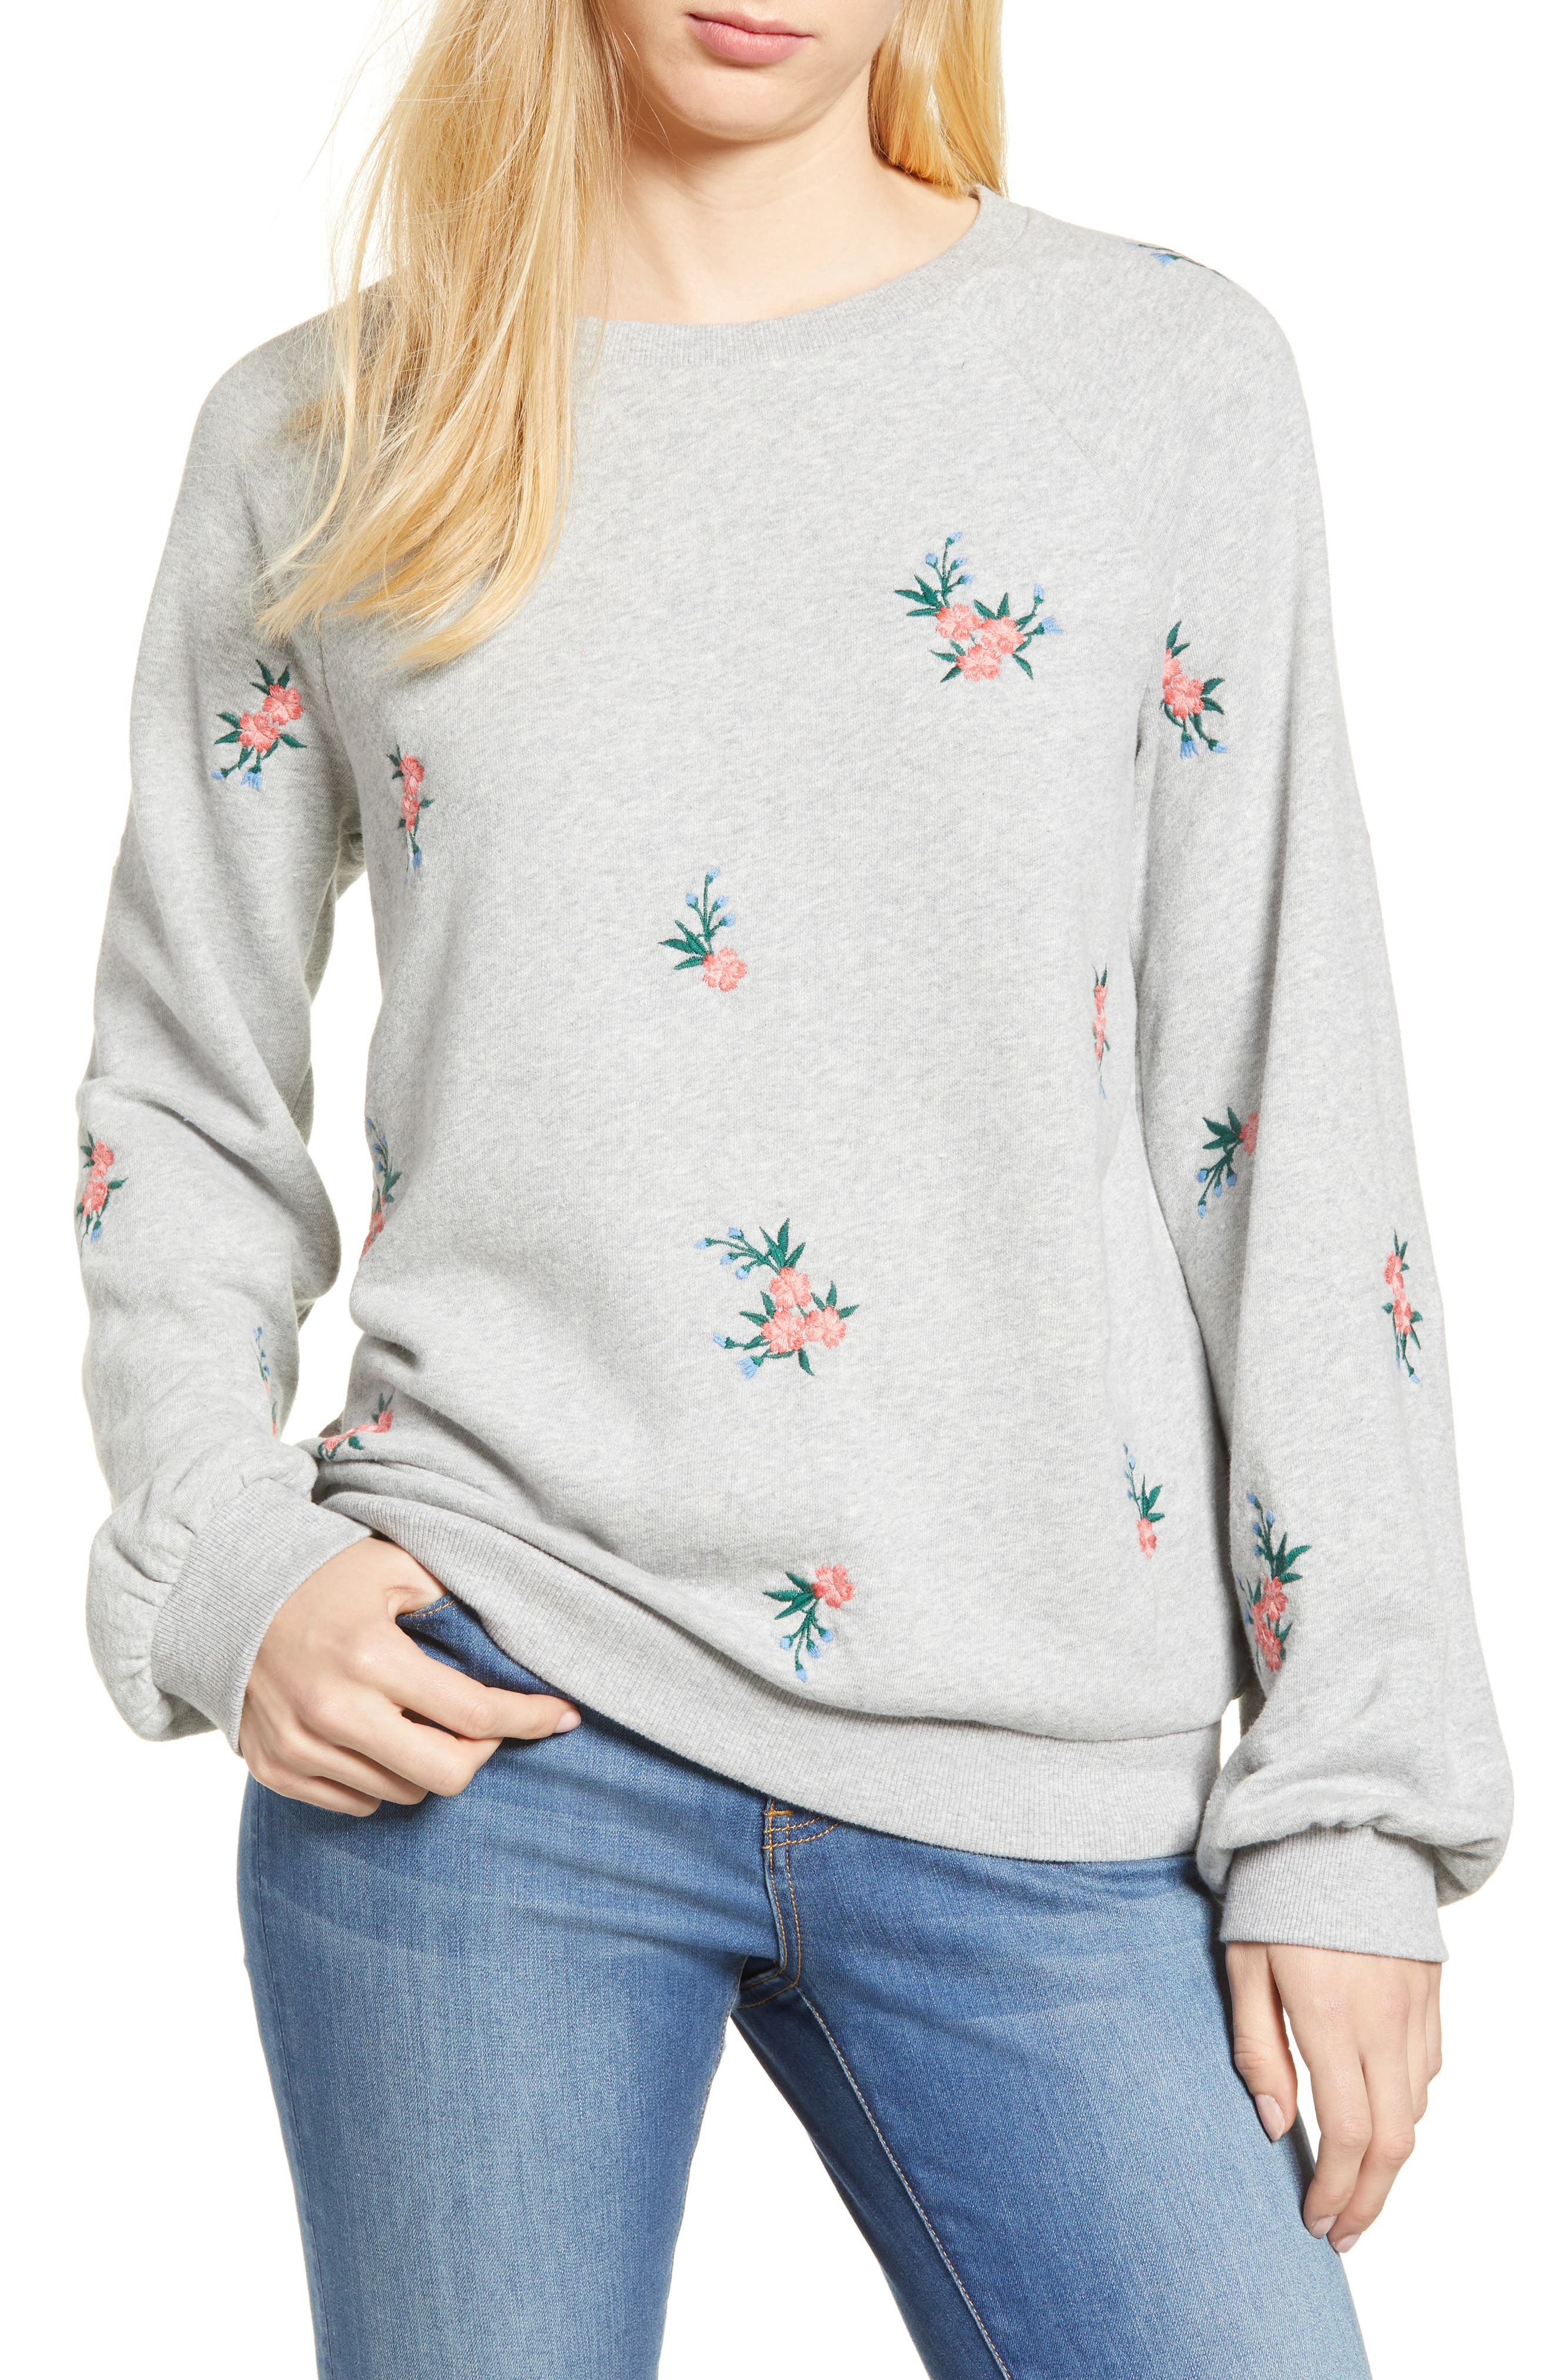 Embroidered Sweatshirt,                         Main,                         color, 030